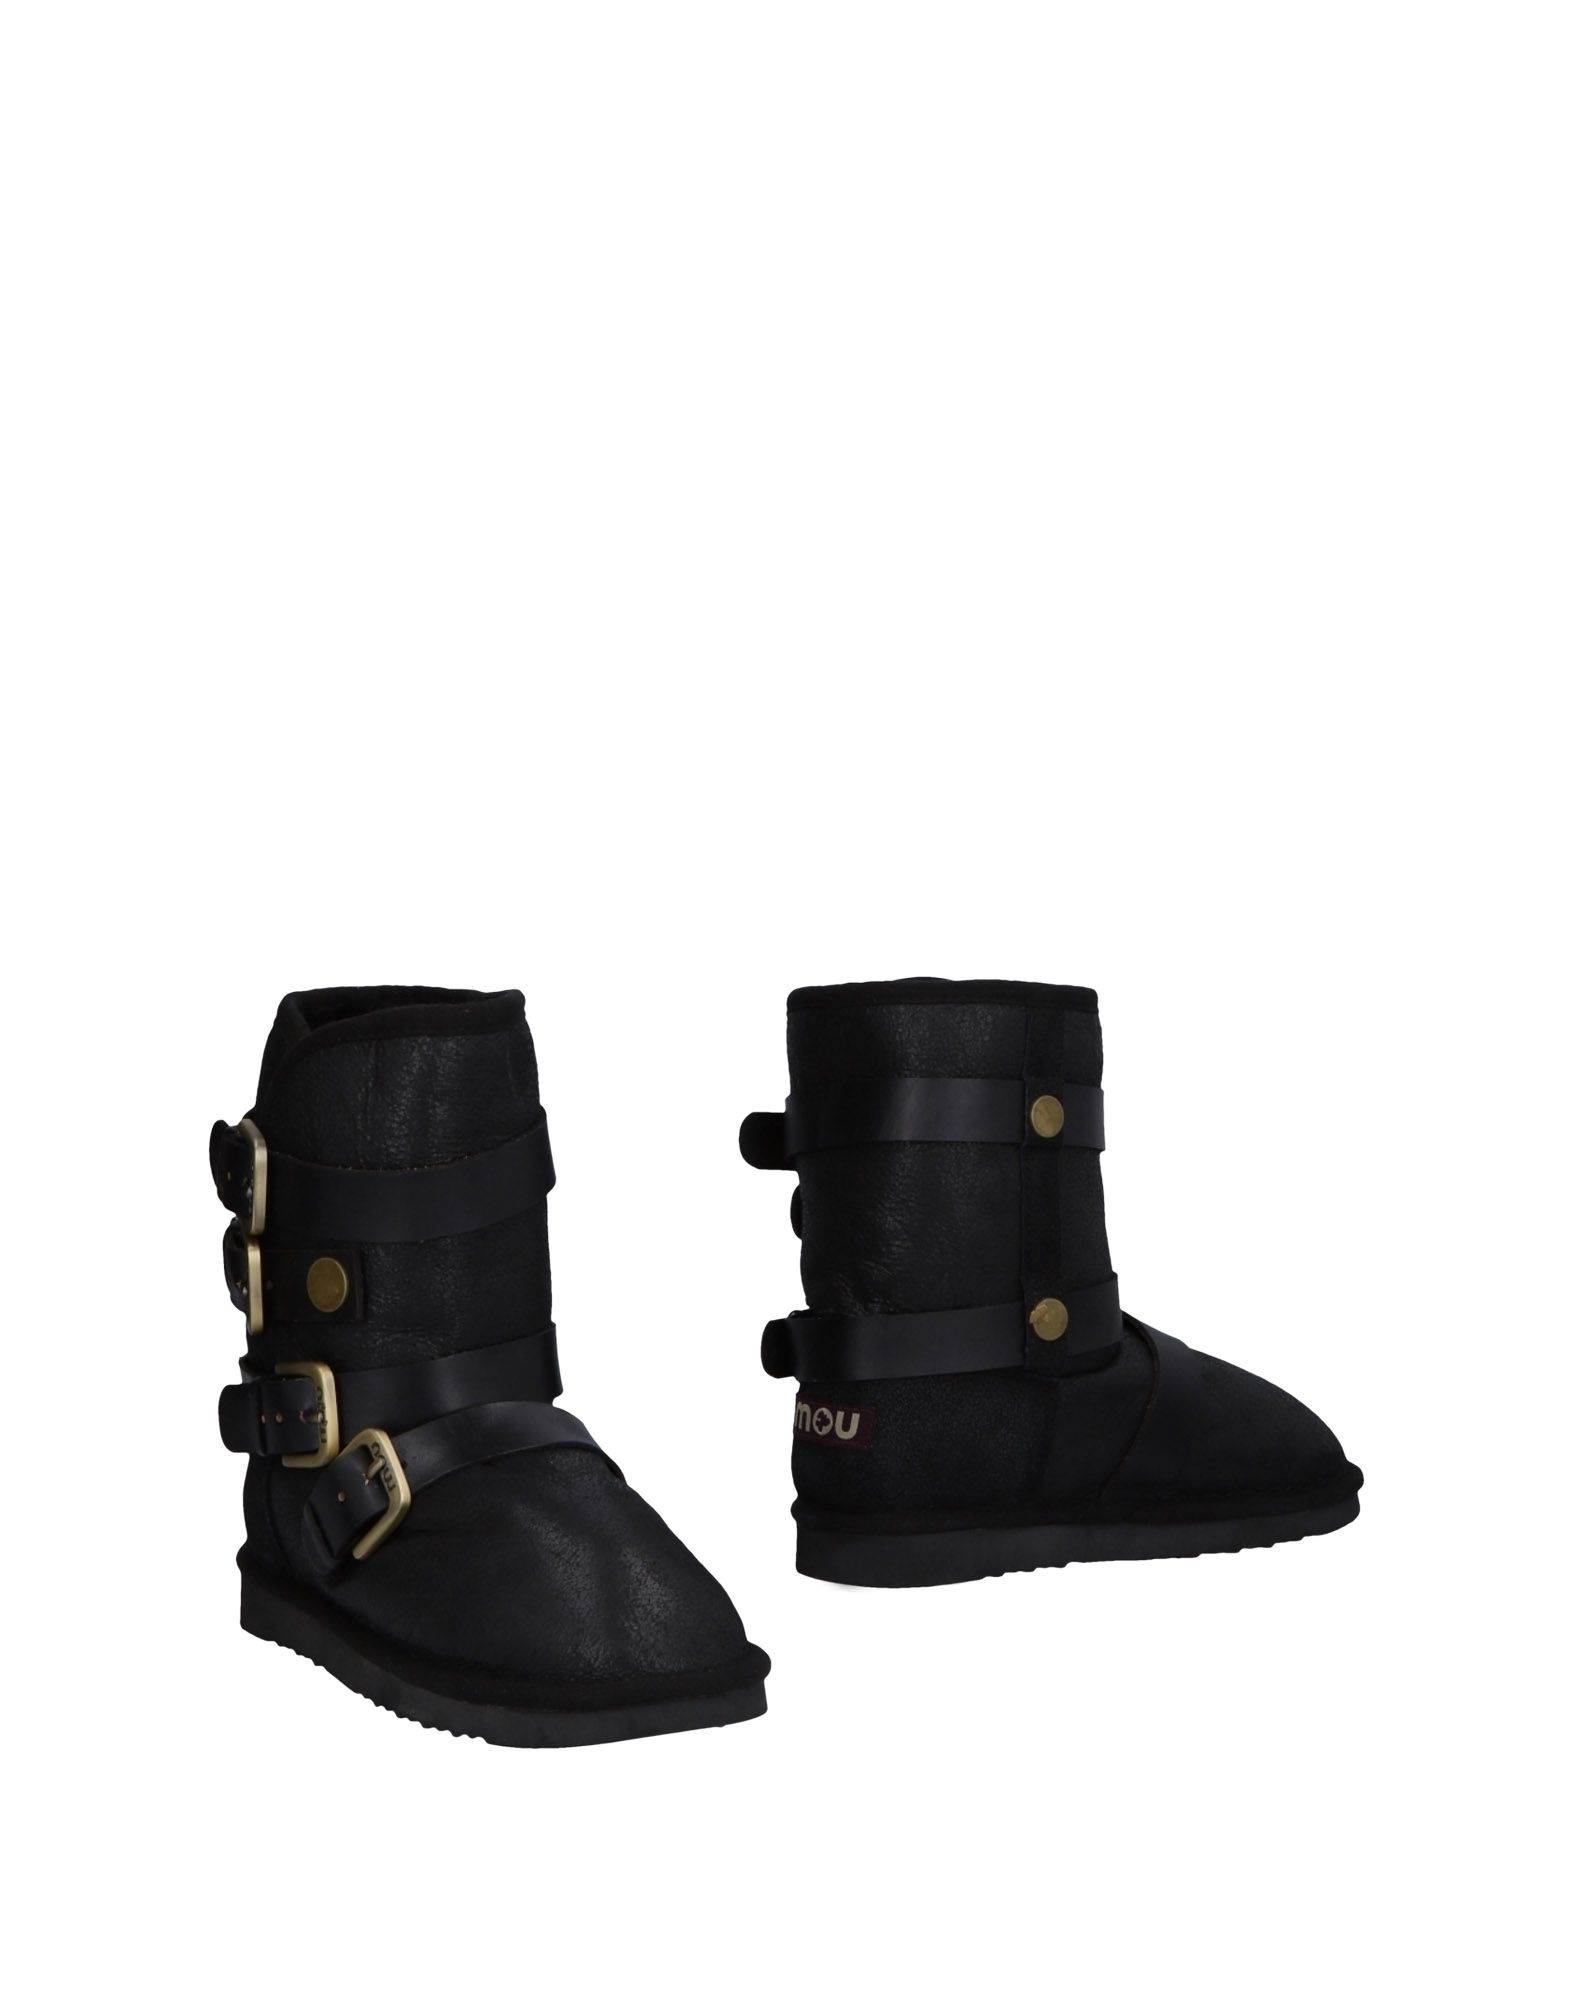 Mou Ankle Boot - Women Mou Ankle Boots online on 11475888IF  United Kingdom - 11475888IF on bef8fc